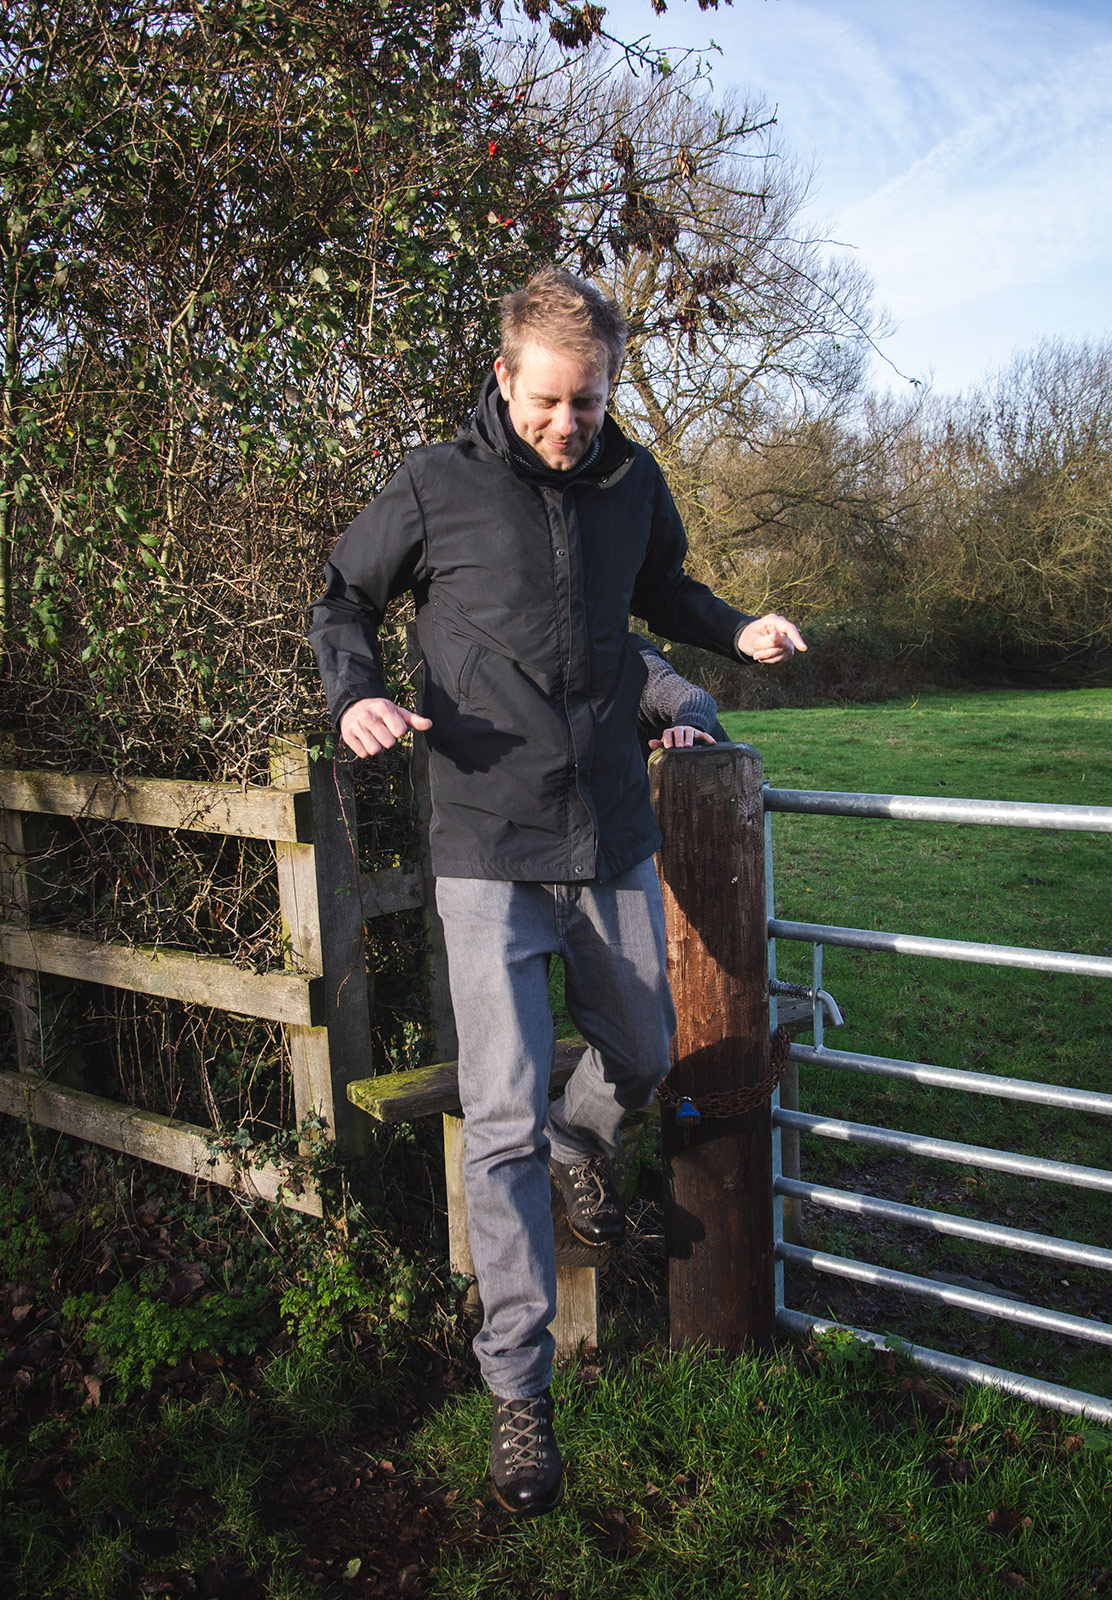 Stepping off stile